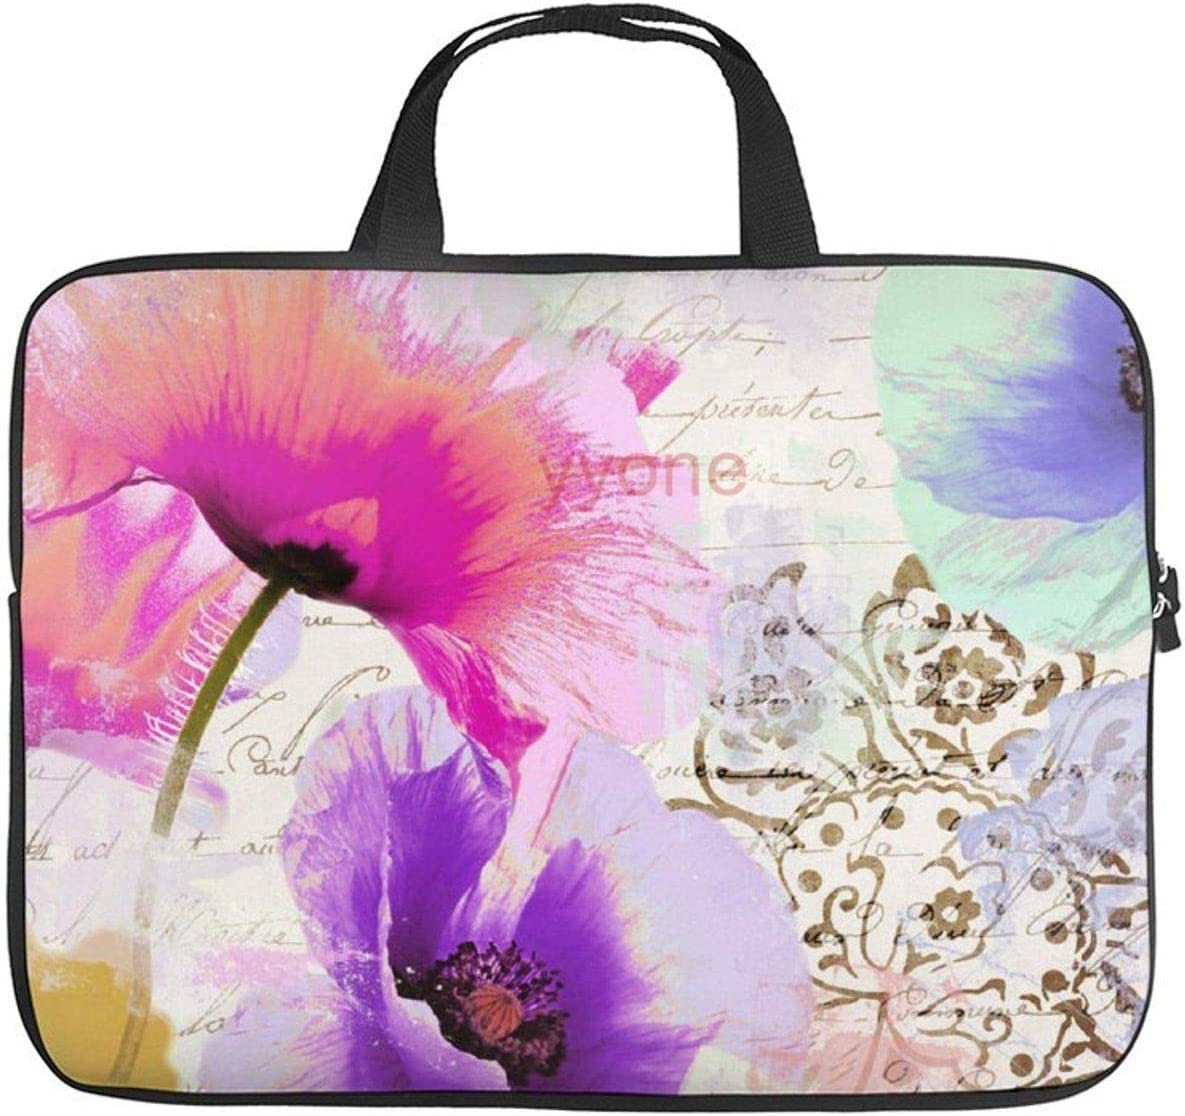 """Neoprene Sleeve Laptop Handbag Case Cover Paint and Poppies 10 Inch Laptop Sleeve Case for 9.7"""" 10.5"""" Ipad Pro Air/ 10"""" Microsoft Surface Go/ 10.5"""" Samsung Galaxy Tab"""